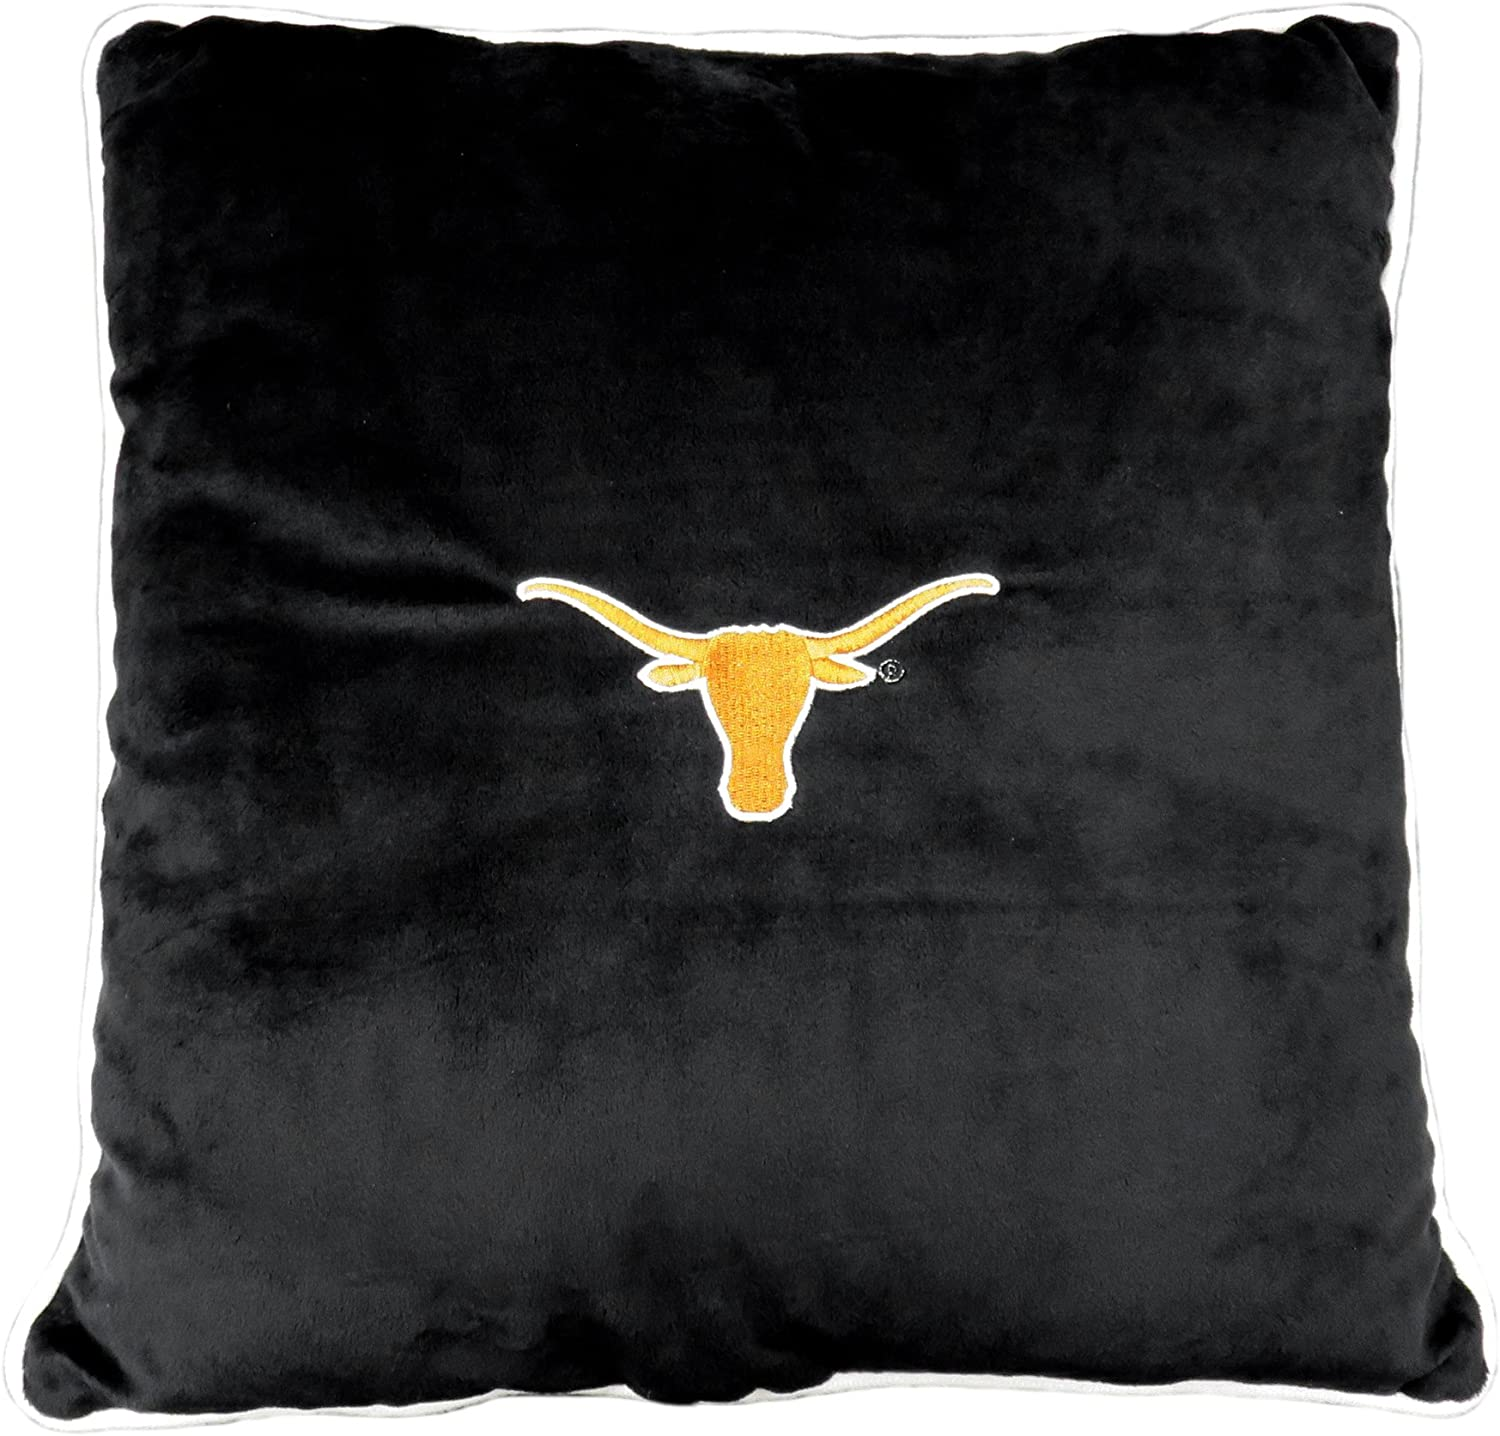 Pets First Collegiate Pet Accessories, Dog Pillow, Texas Longhorns, 16 x 16 x 3 inches